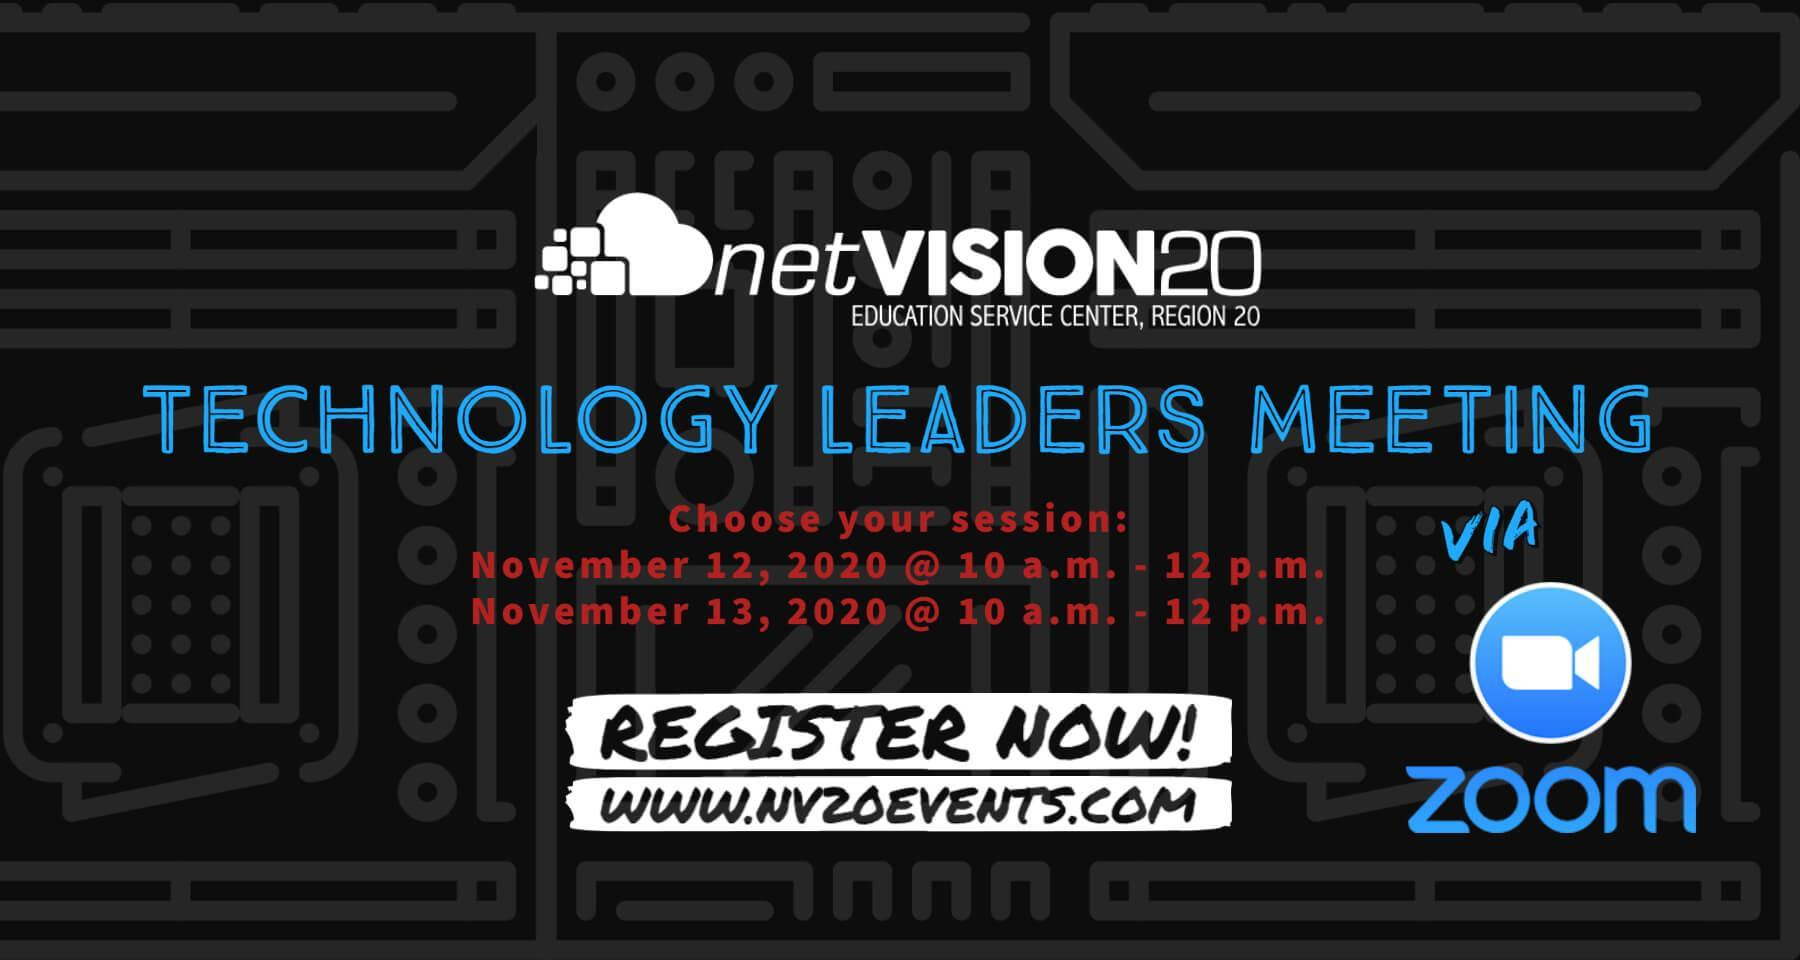 Technology Leaders Meeting, Register now!